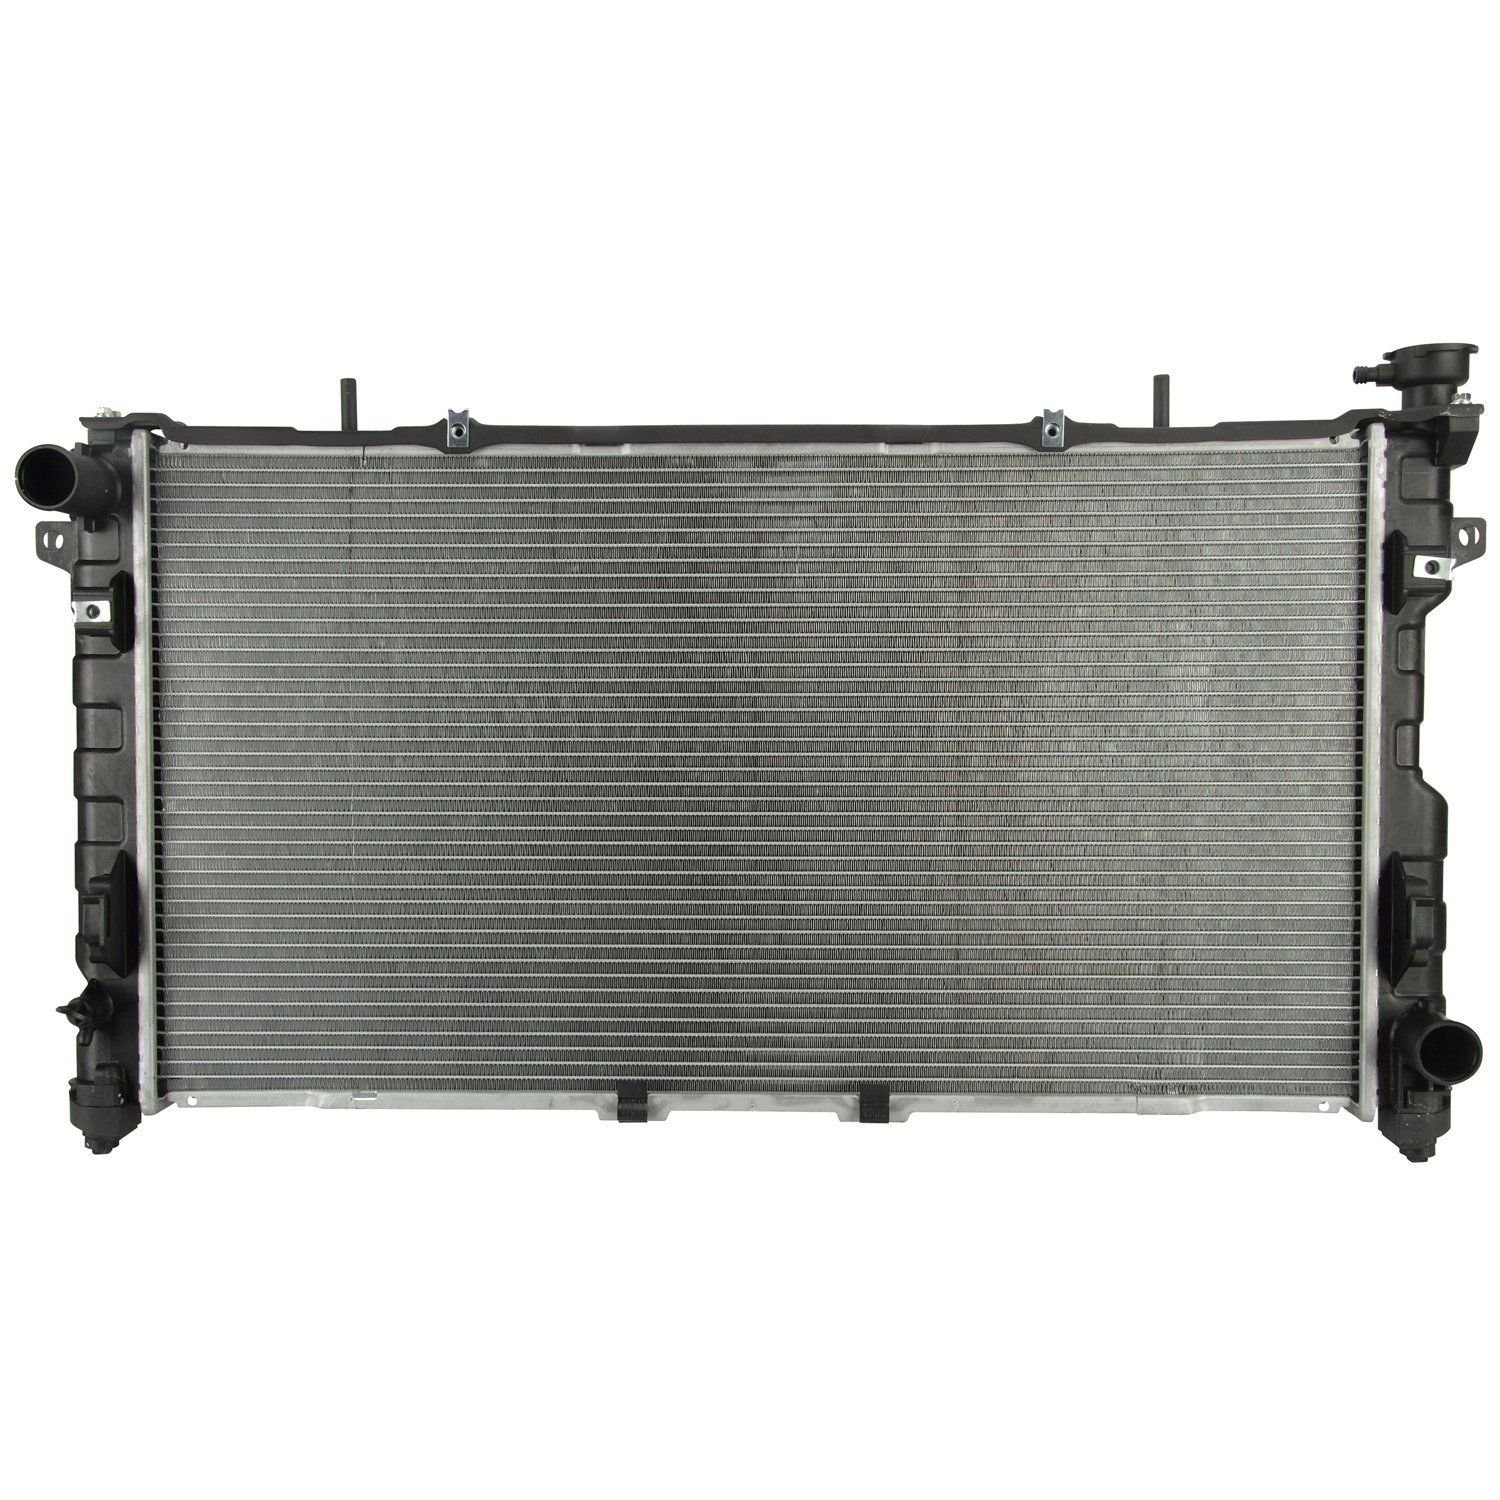 Klimoto Brand New Radiator fits Dodge Grand Caravan Chrysler Town & Country 2001-2004 3.3L 3.8L V6 CH3010162 CH3010277 4809225AC 4809225AE Q2311 CU2311 RAD2311 DPI2311